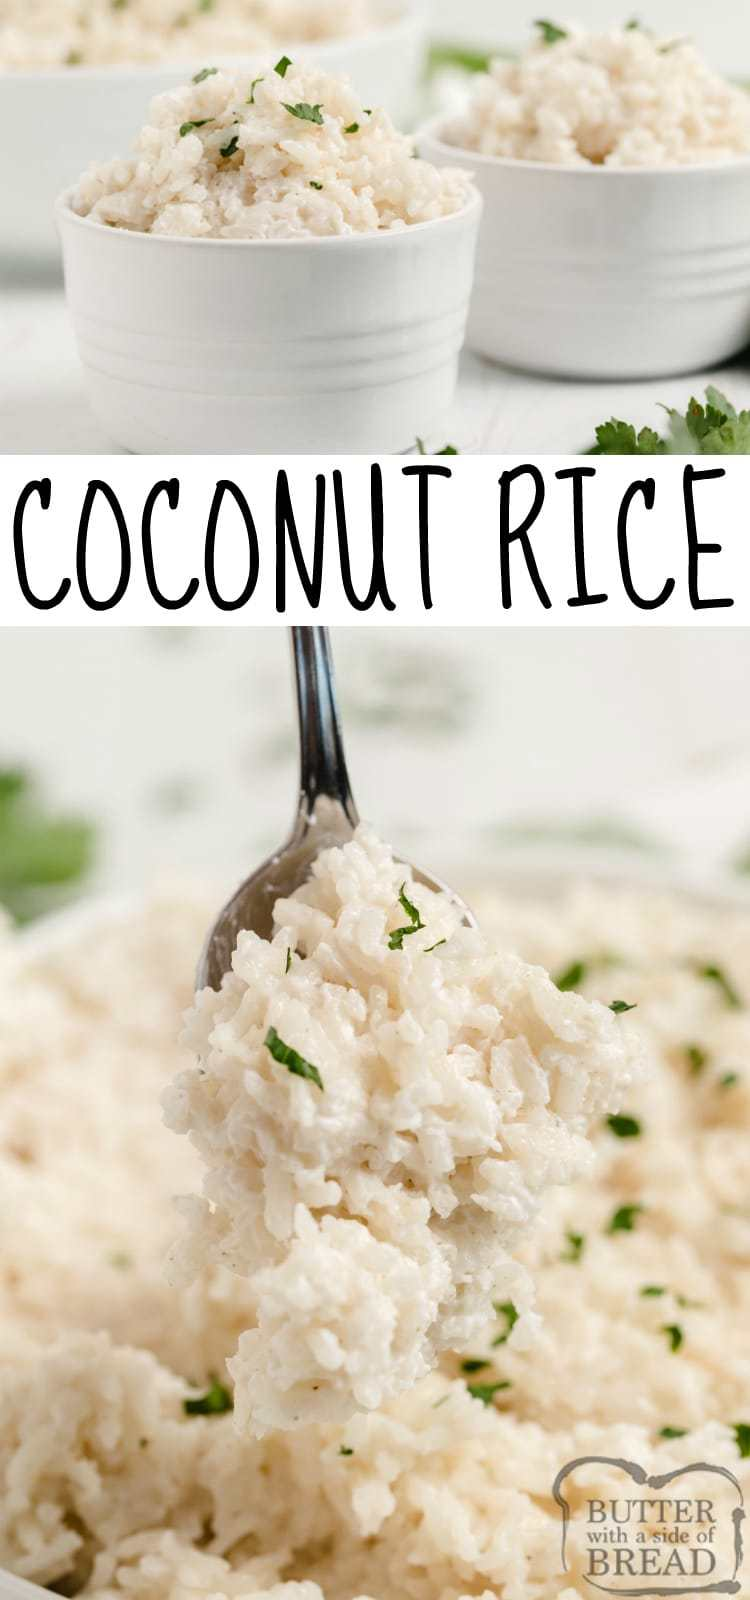 Coconut Rice is a simple side dish recipe that is slightly sweet with a subtle hint of coconut. This delicious rice recipe is easily made on the stovetop with coconut milk and a little bit of sugar.